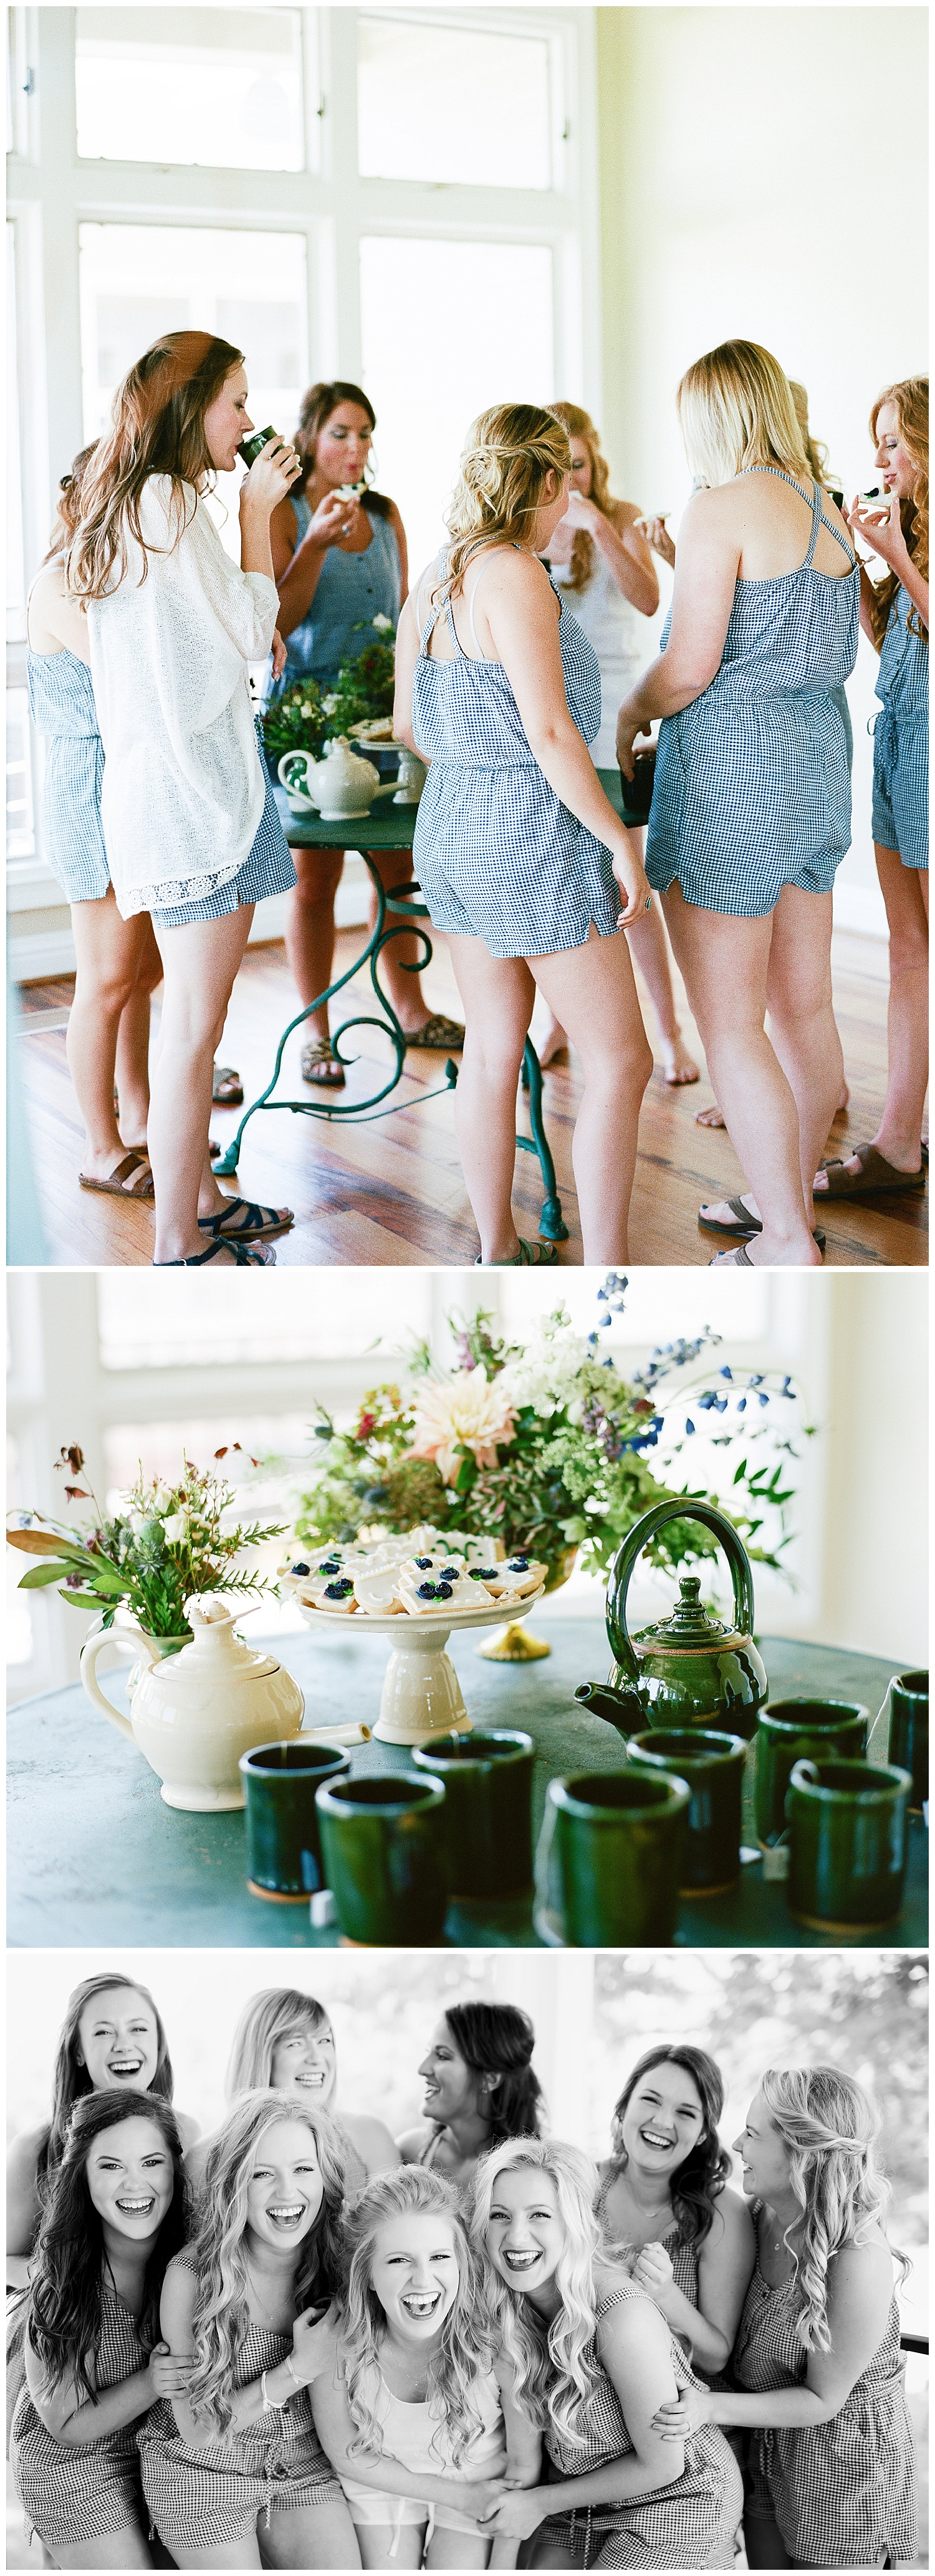 One of my all time favorites, Hayley had her bridesmaids enjoy a cup of tea and cookies (adorable cookies, might I add) as they got ready in their blue rompers! I mean, how cute are they? Fun fact, Hayley actually made all of those mugs and teapots that you see! She gave each bridesmaid a cup as a gift. I love seeing little personal touches like that in wedding days.